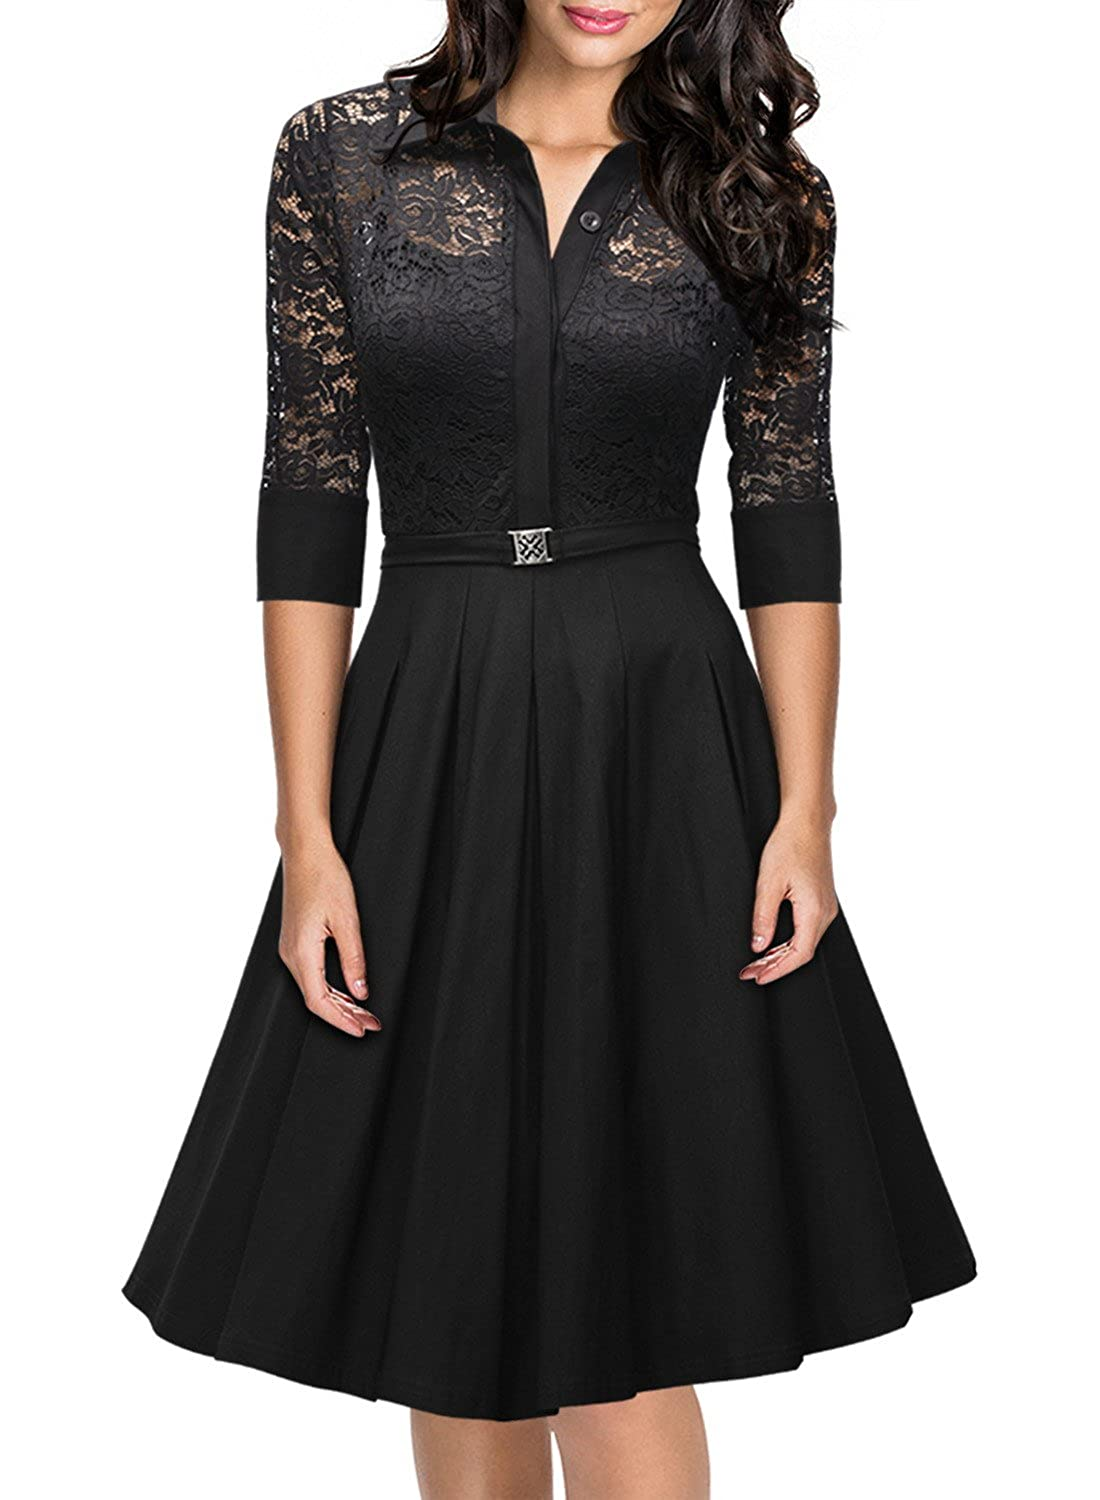 Missmay Women's Vintage 1950s Style 3/4 Sleeve Black Lace Flare A ...